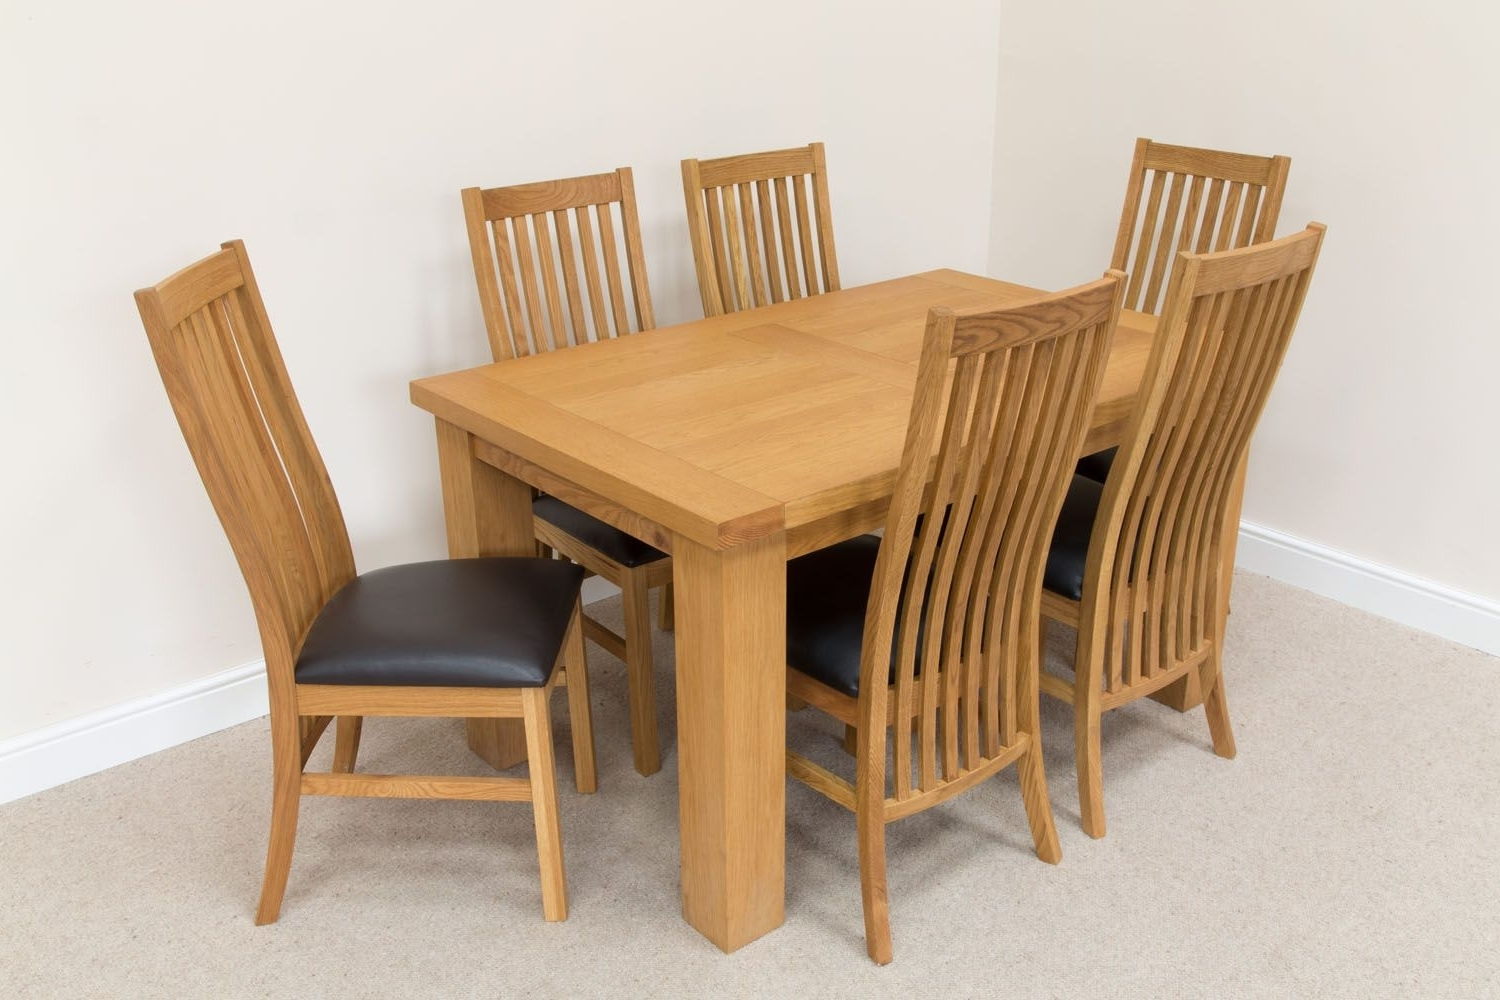 6 Seater Oak Dining Set Throughout Oak Dining Tables With 6 Chairs (View 2 of 25)